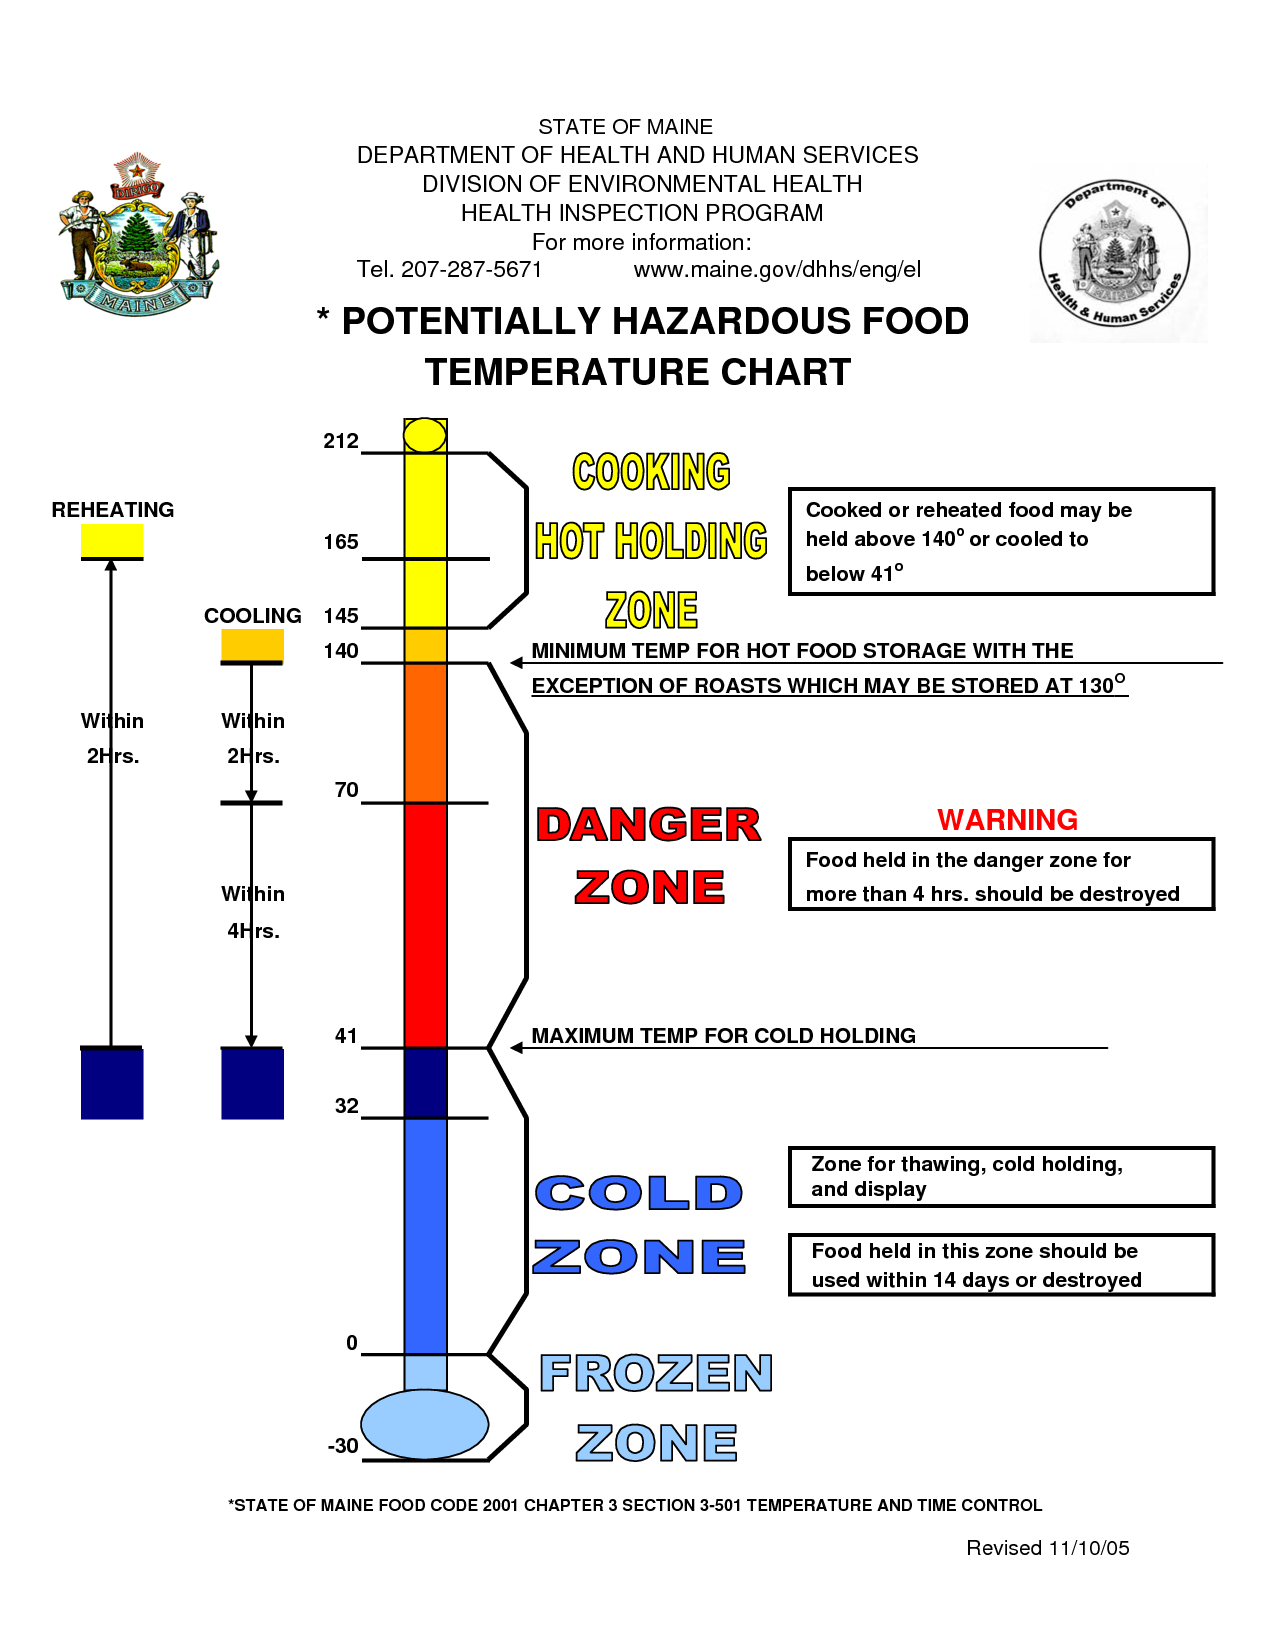 temperature chart template potentially hazardous food temperature humidity diagram food temperature diagram [ 1275 x 1650 Pixel ]